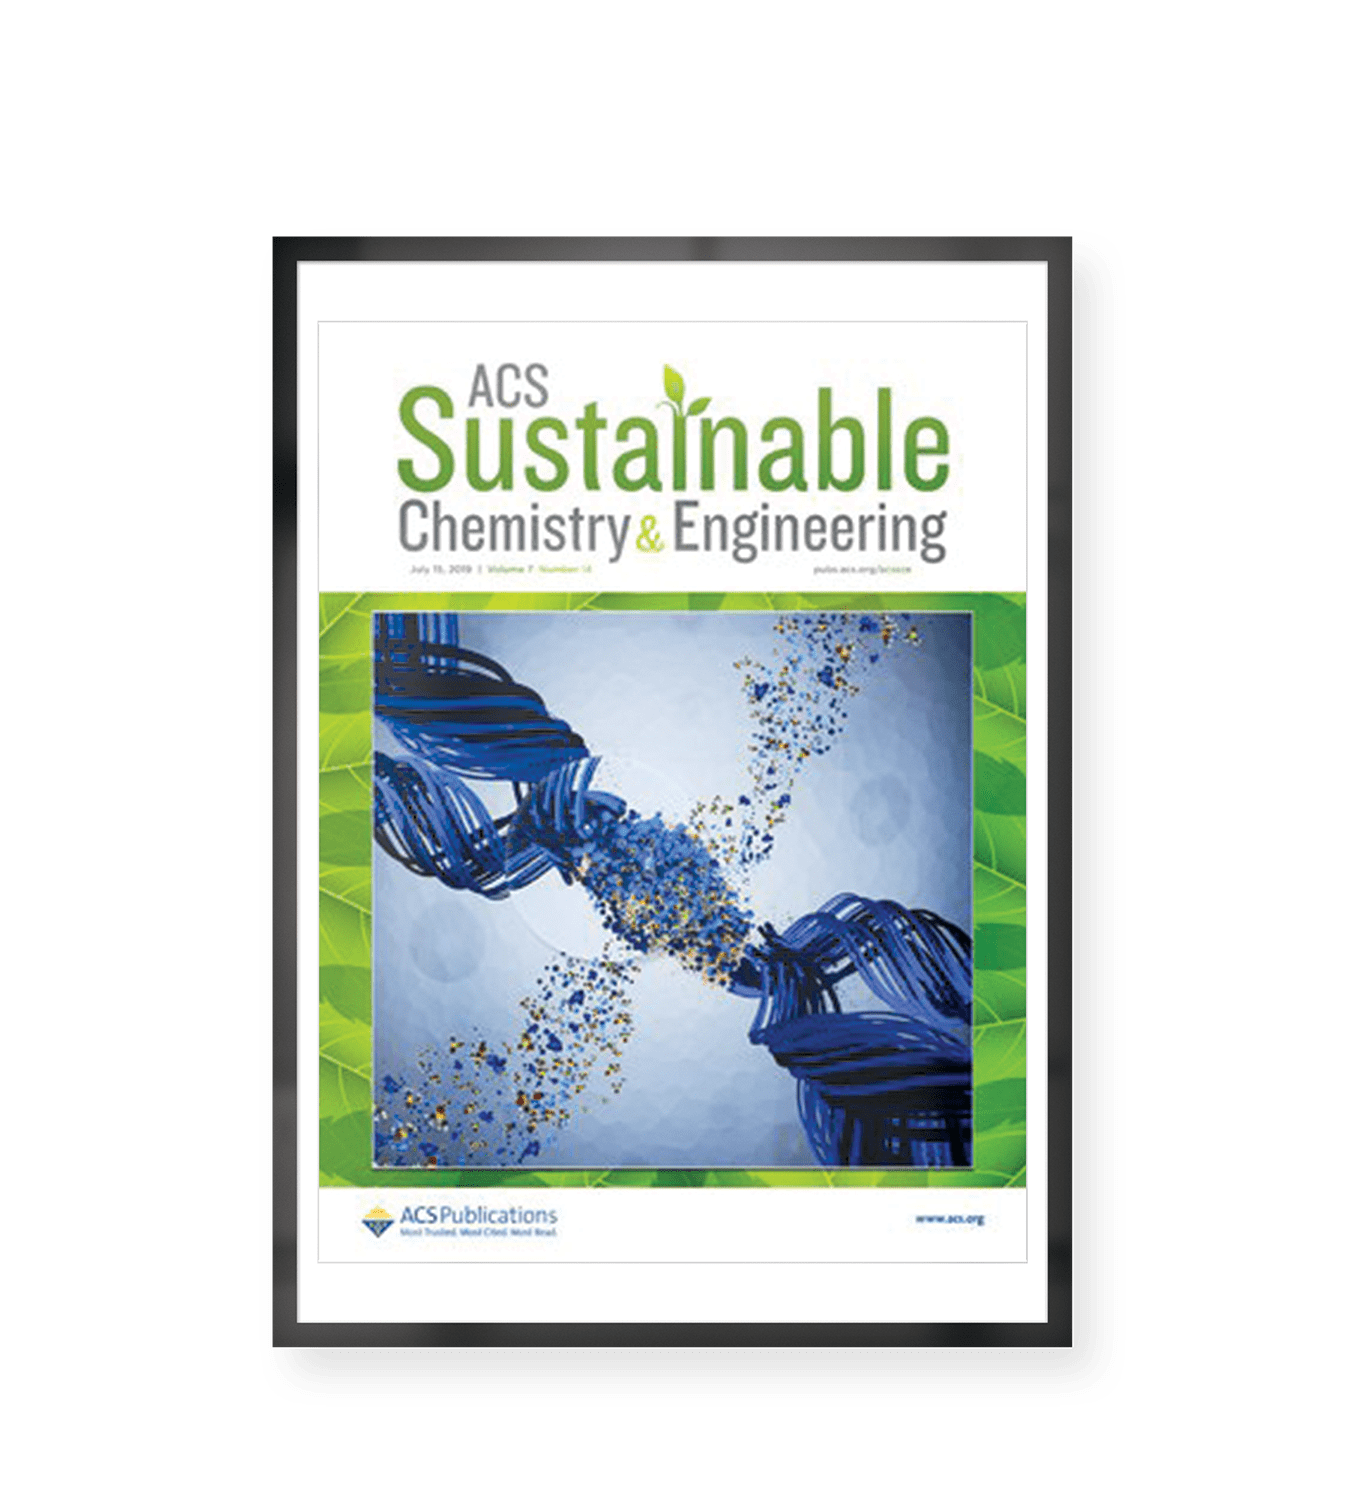 Front Cover Image of ACS Journal of Sustainable Chemistry and Engineering representing the research of Dr. Nolene Byrne et al: